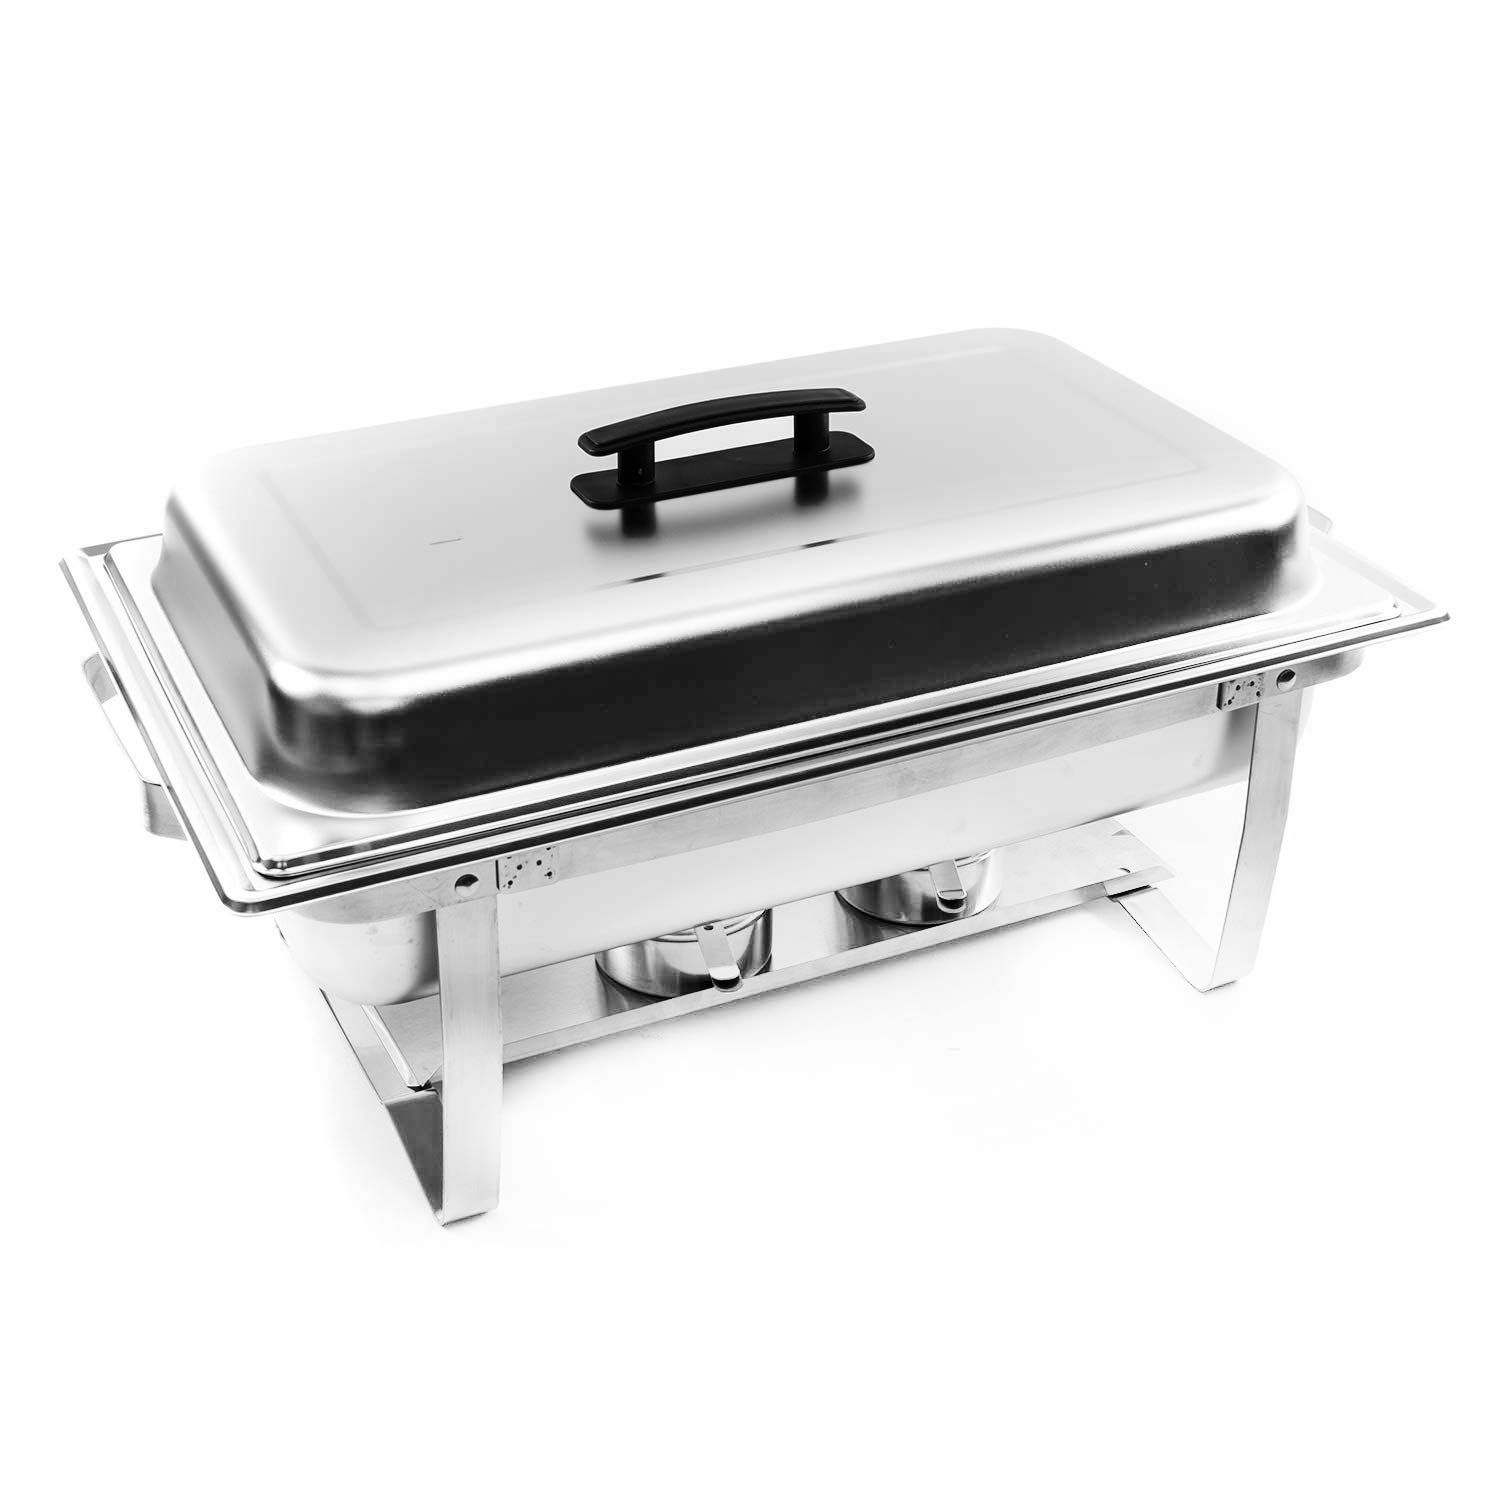 Alpha Living 8QT Chafing Dish High Grade Stainless Steel Chafer Complete Set by ALPHA LIVING